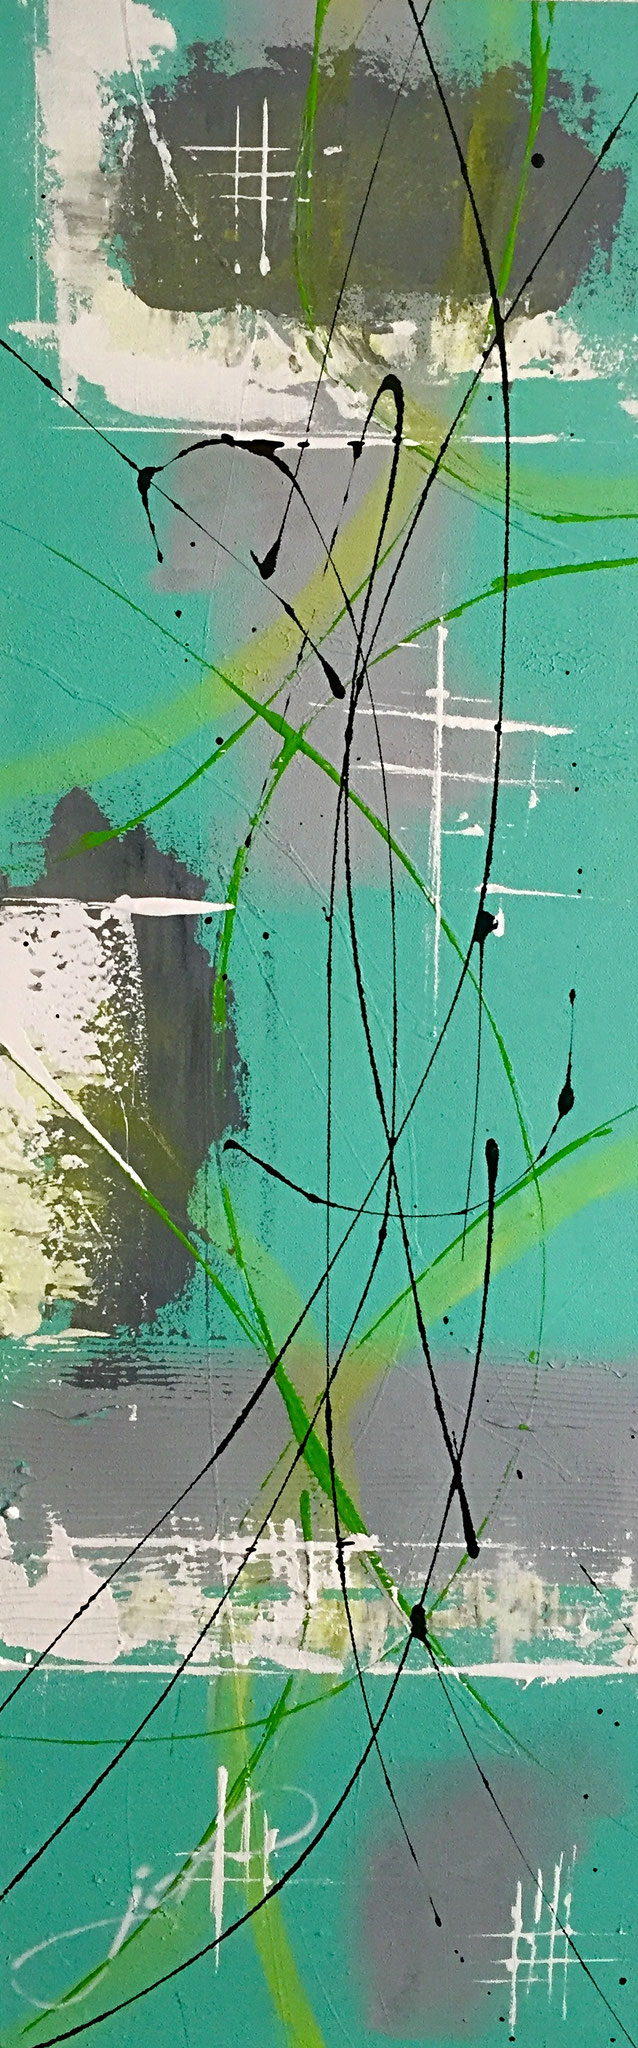 90 x 30 cm / look through / Canvas and Mixmedia / 2017